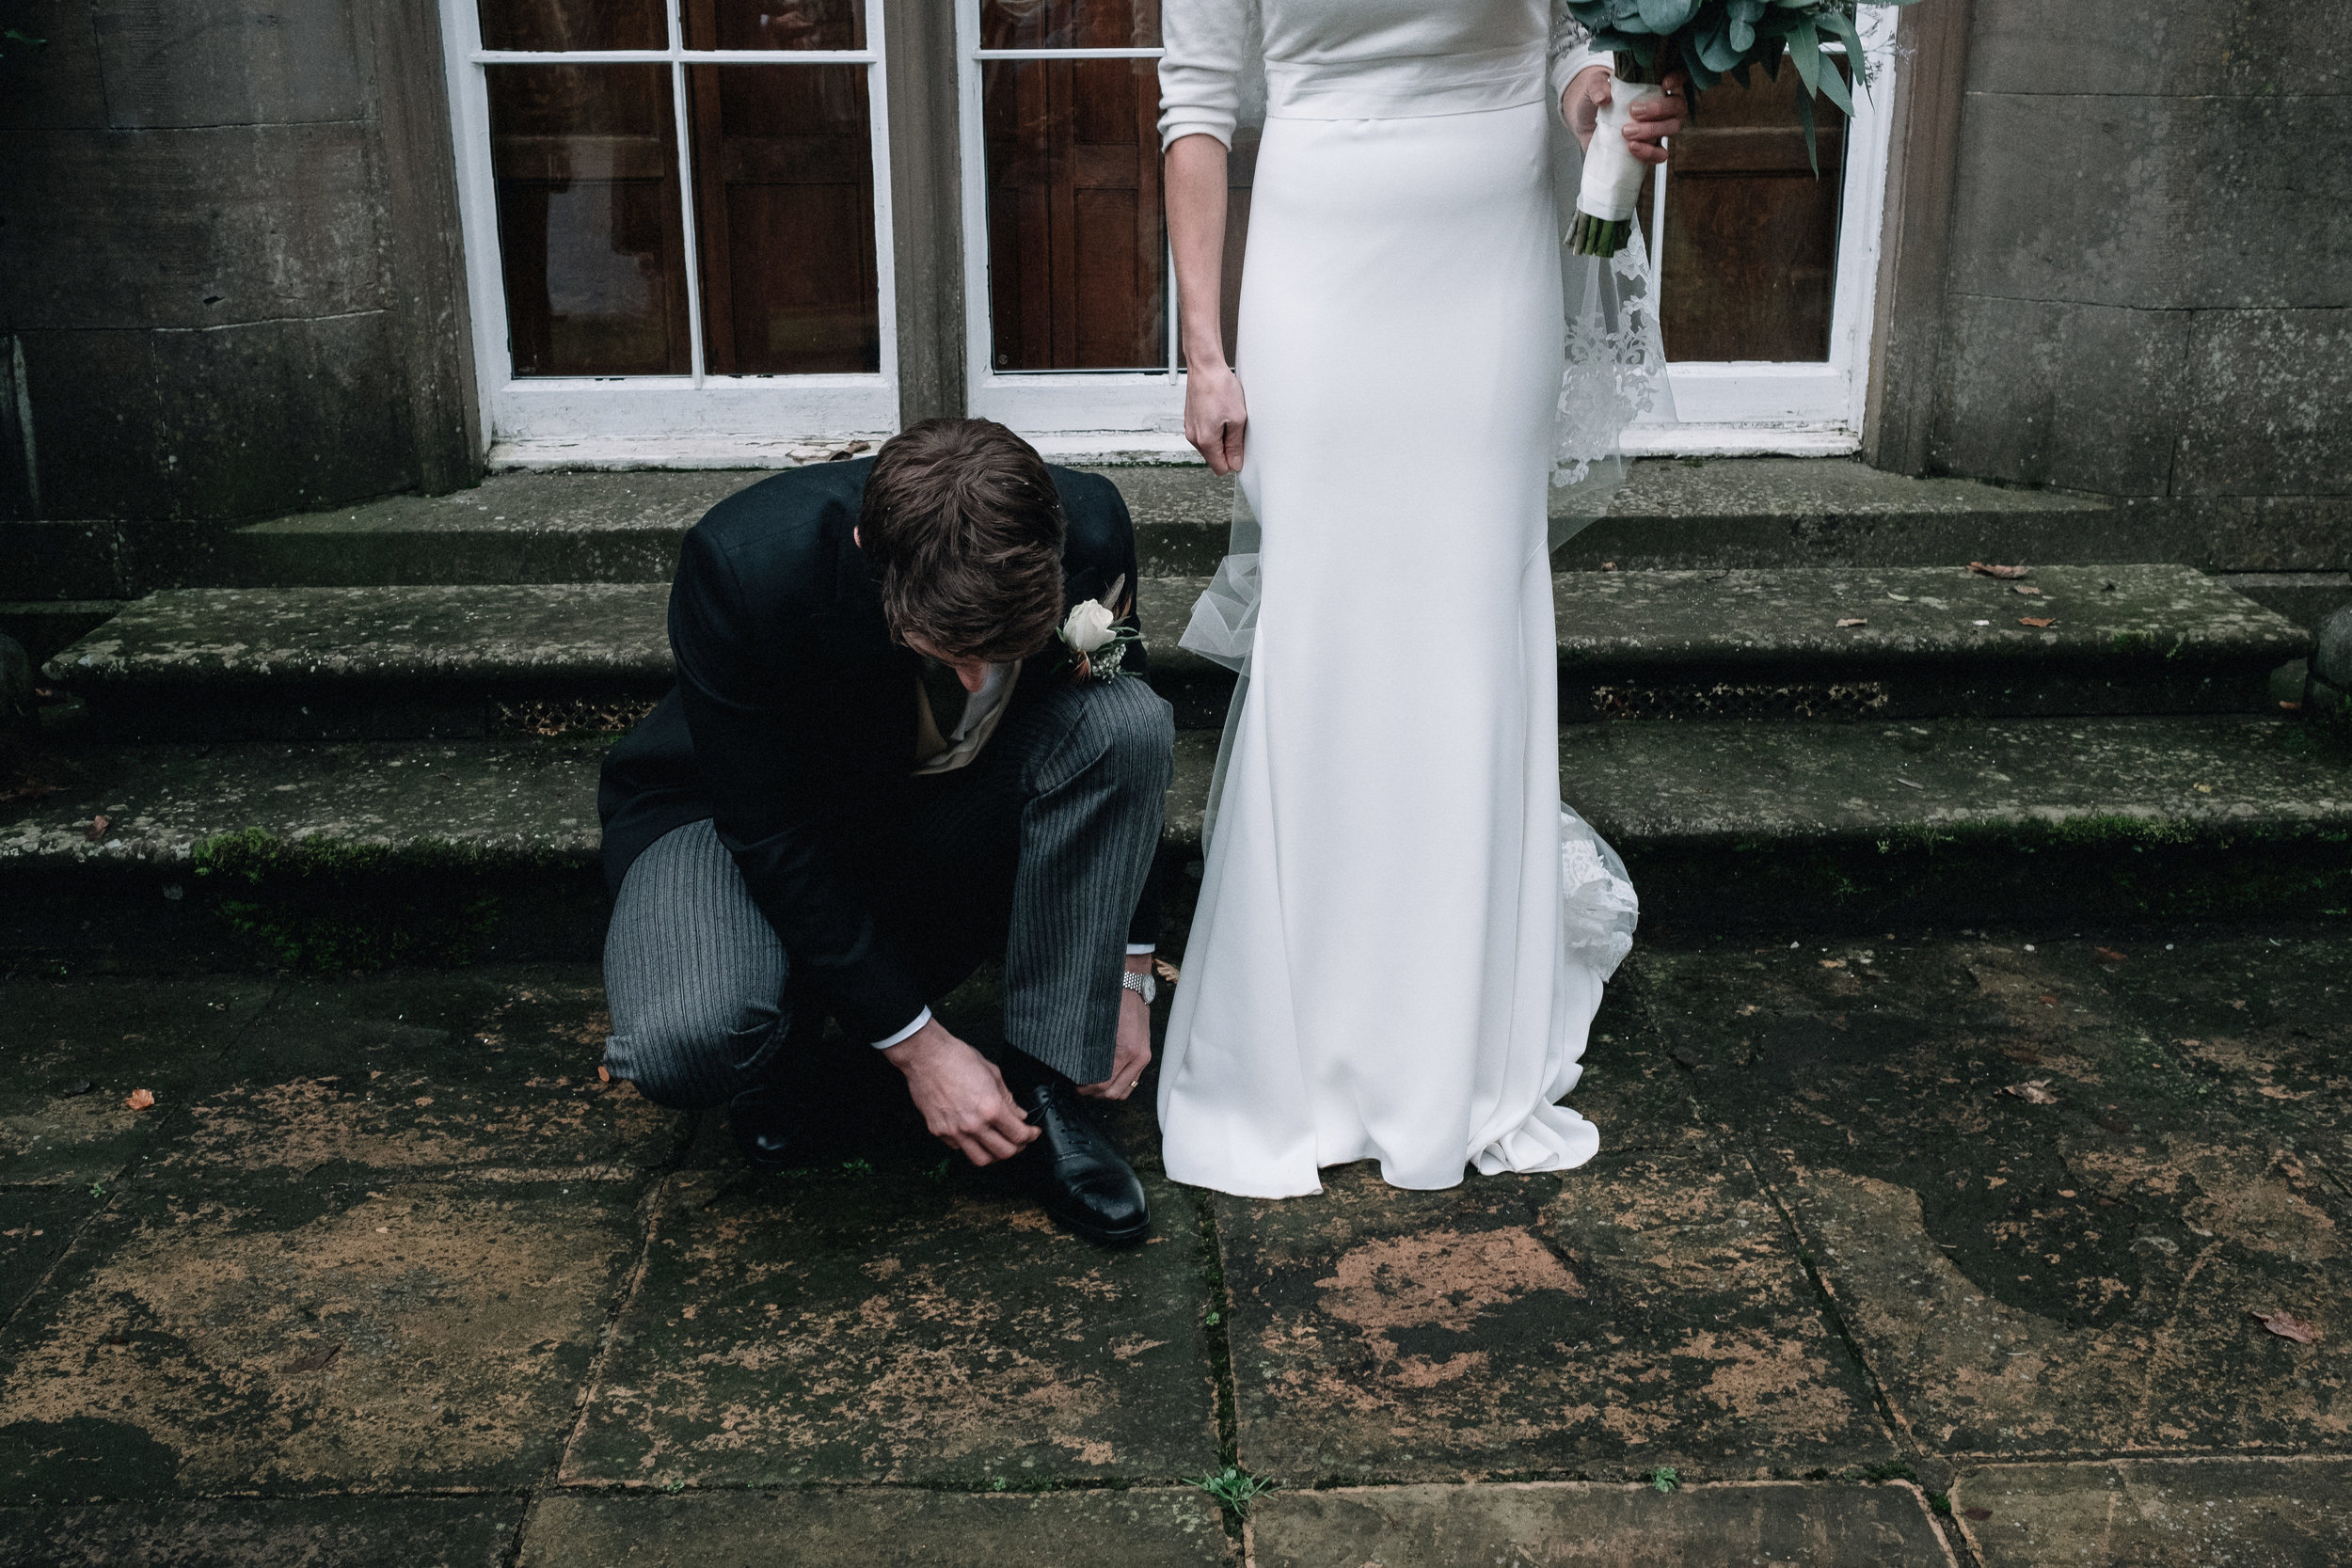 A groom is kneeling down to tie his shoe laces.